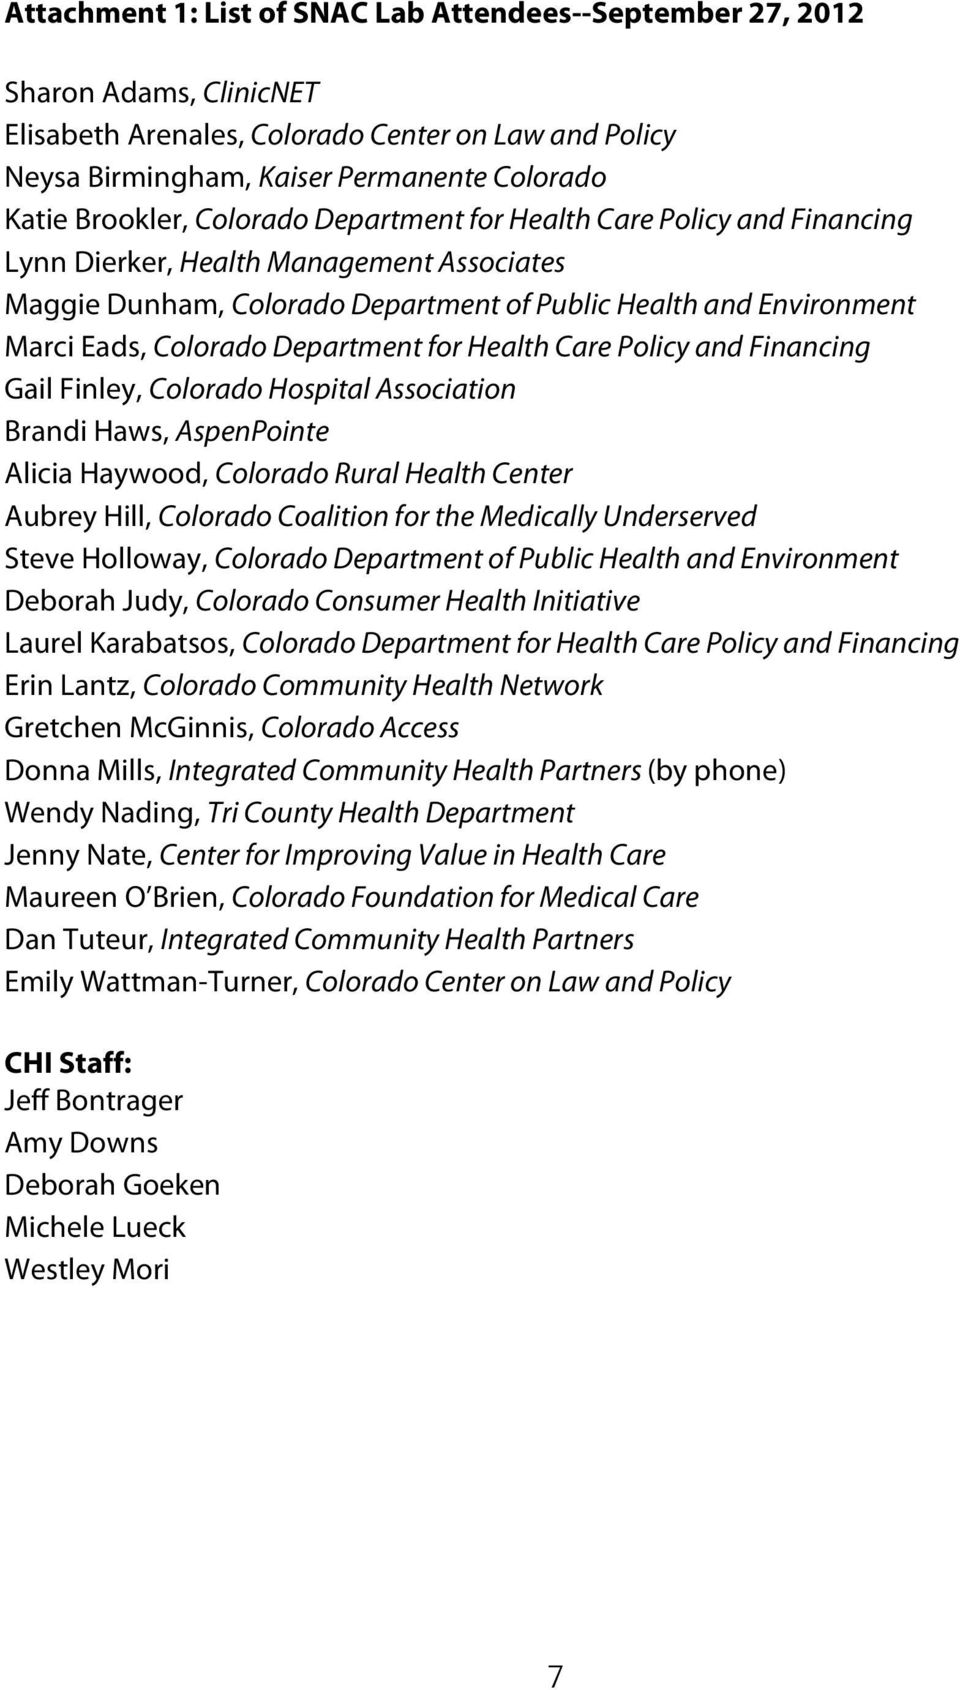 for Health Care Policy and Financing Gail Finley, Colorado Hospital Association Brandi Haws, AspenPointe Alicia Haywood, Colorado Rural Health Center Aubrey Hill, Colorado Coalition for the Medically